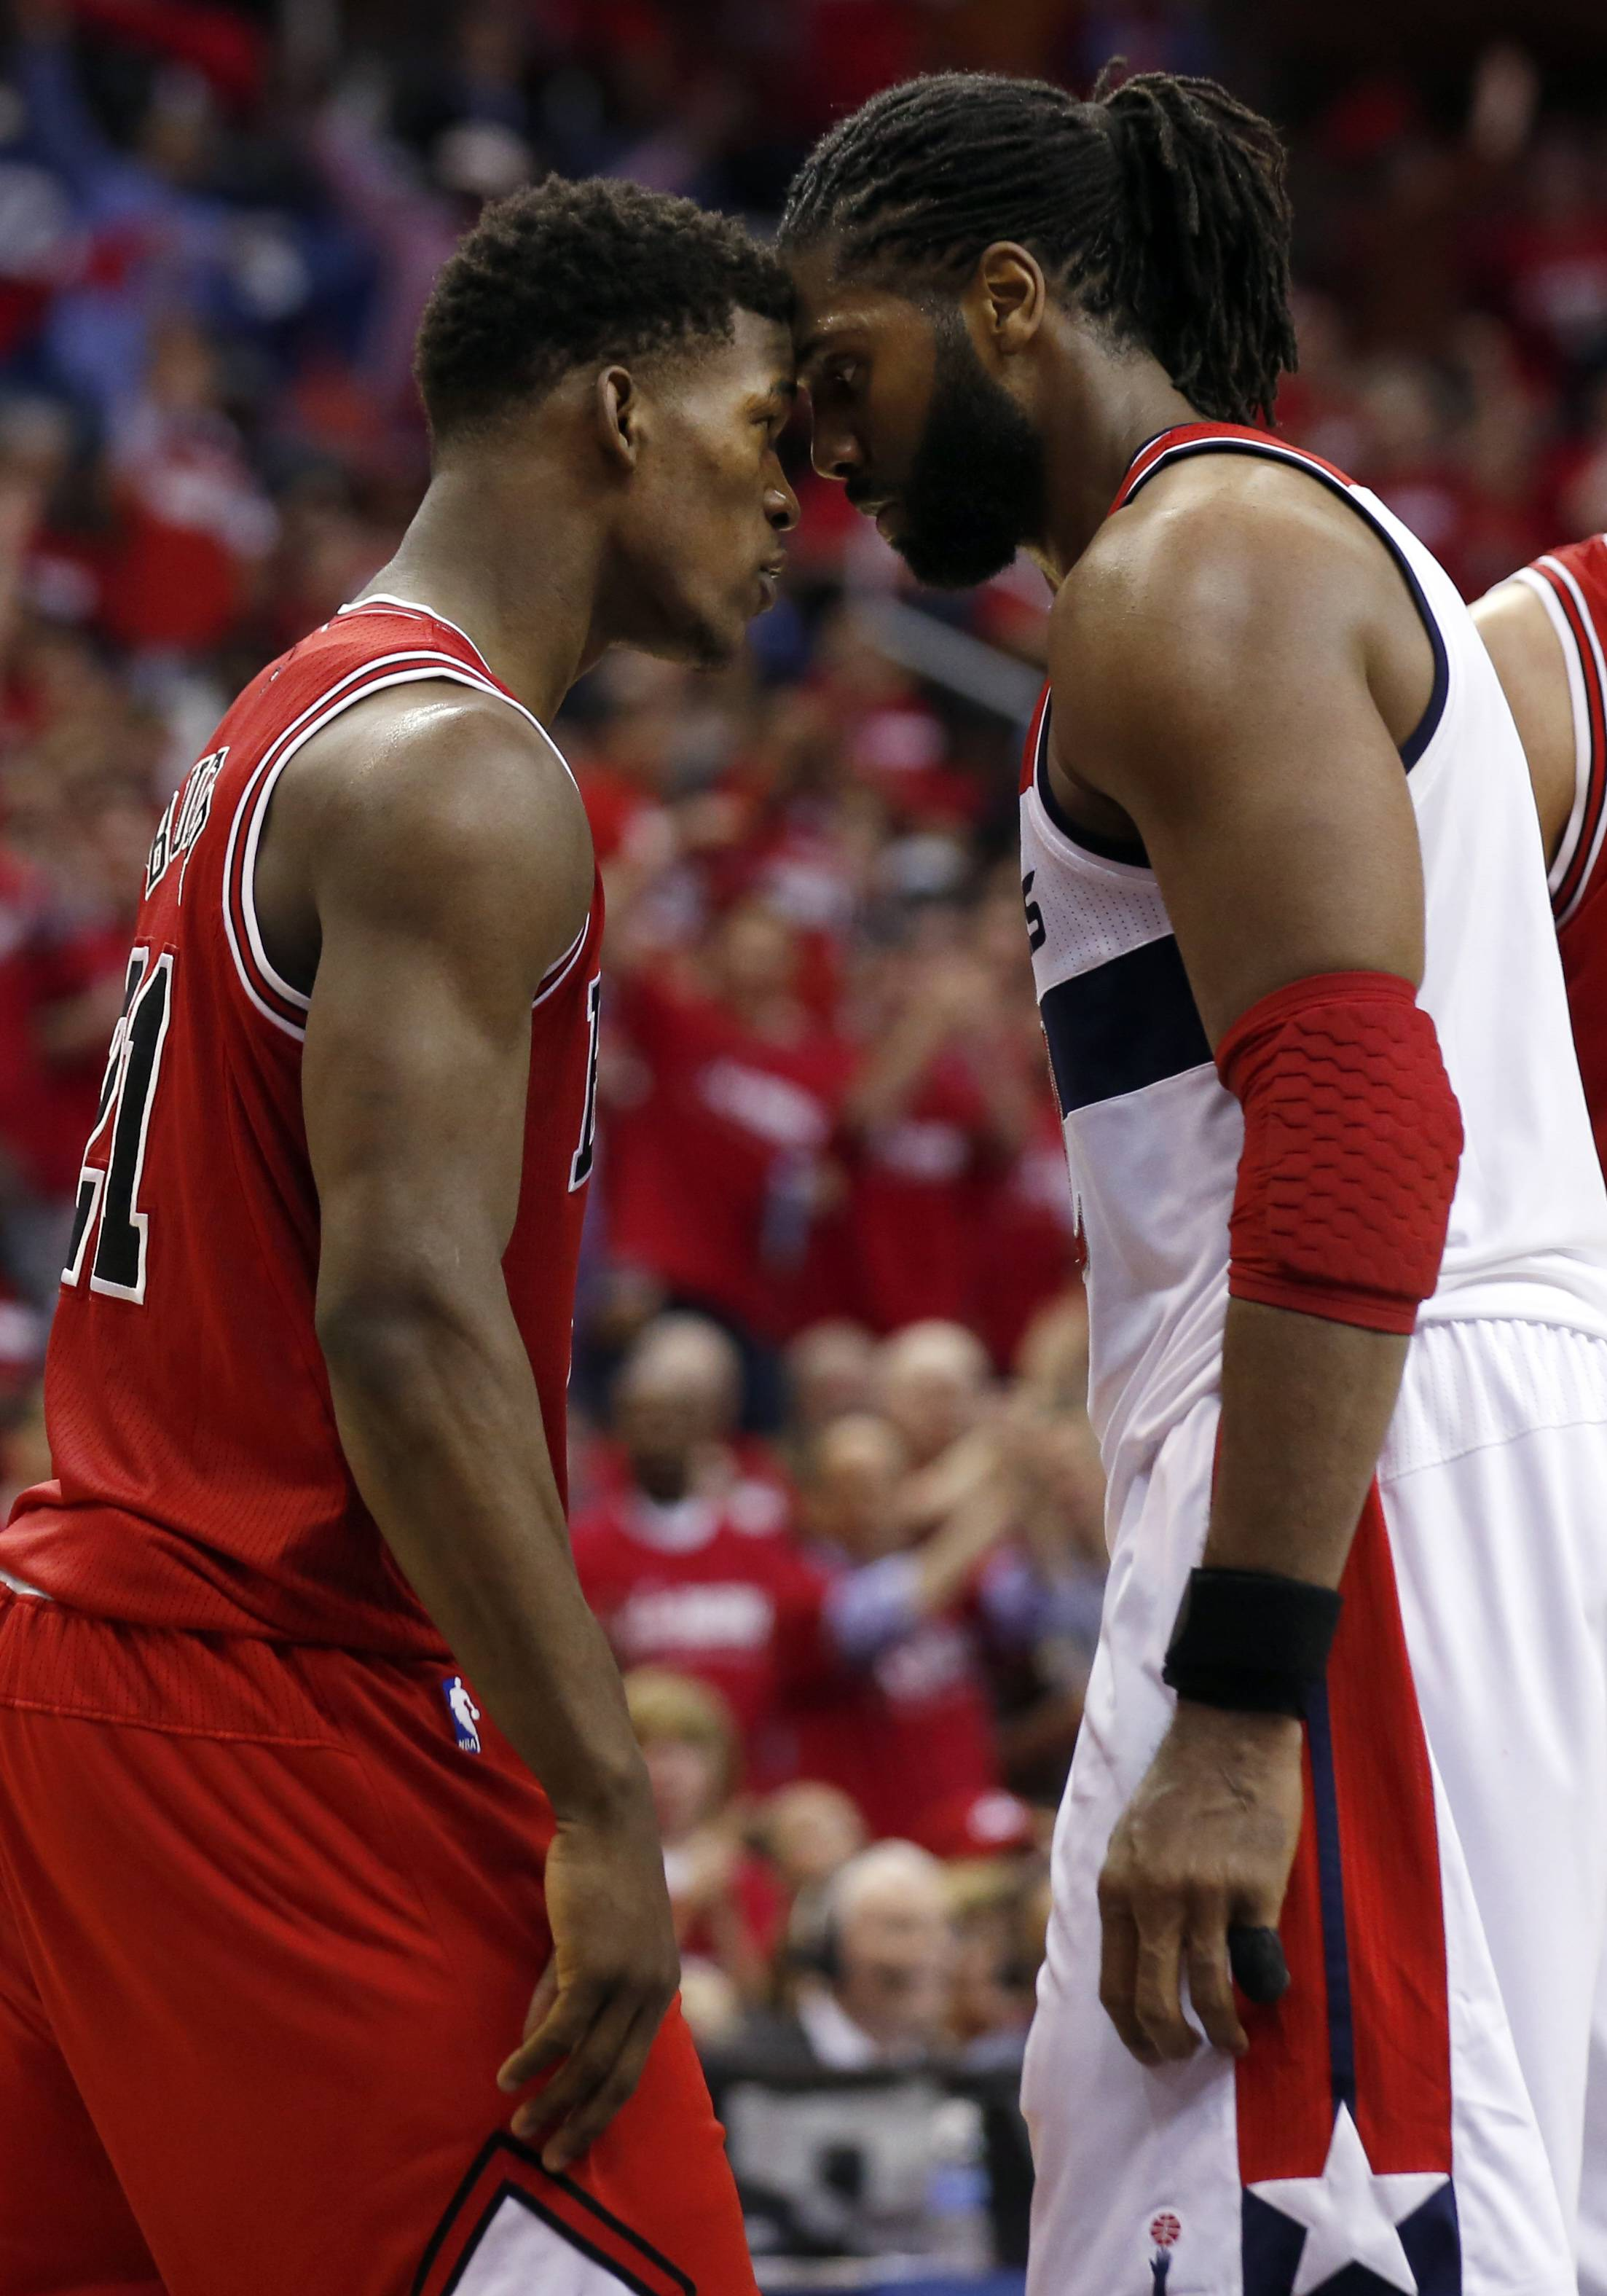 Chicago Bulls guard Jimmy Butler (21) and Washington Wizards forward Nene (42), from Brazil, stand head-to-head in the second half of Game 3 of an opening-round NBA basketball playoff series on Friday, April 25, 2014, in Washington. Nene received a double technical and was ejected. The Bulls won 100-97.